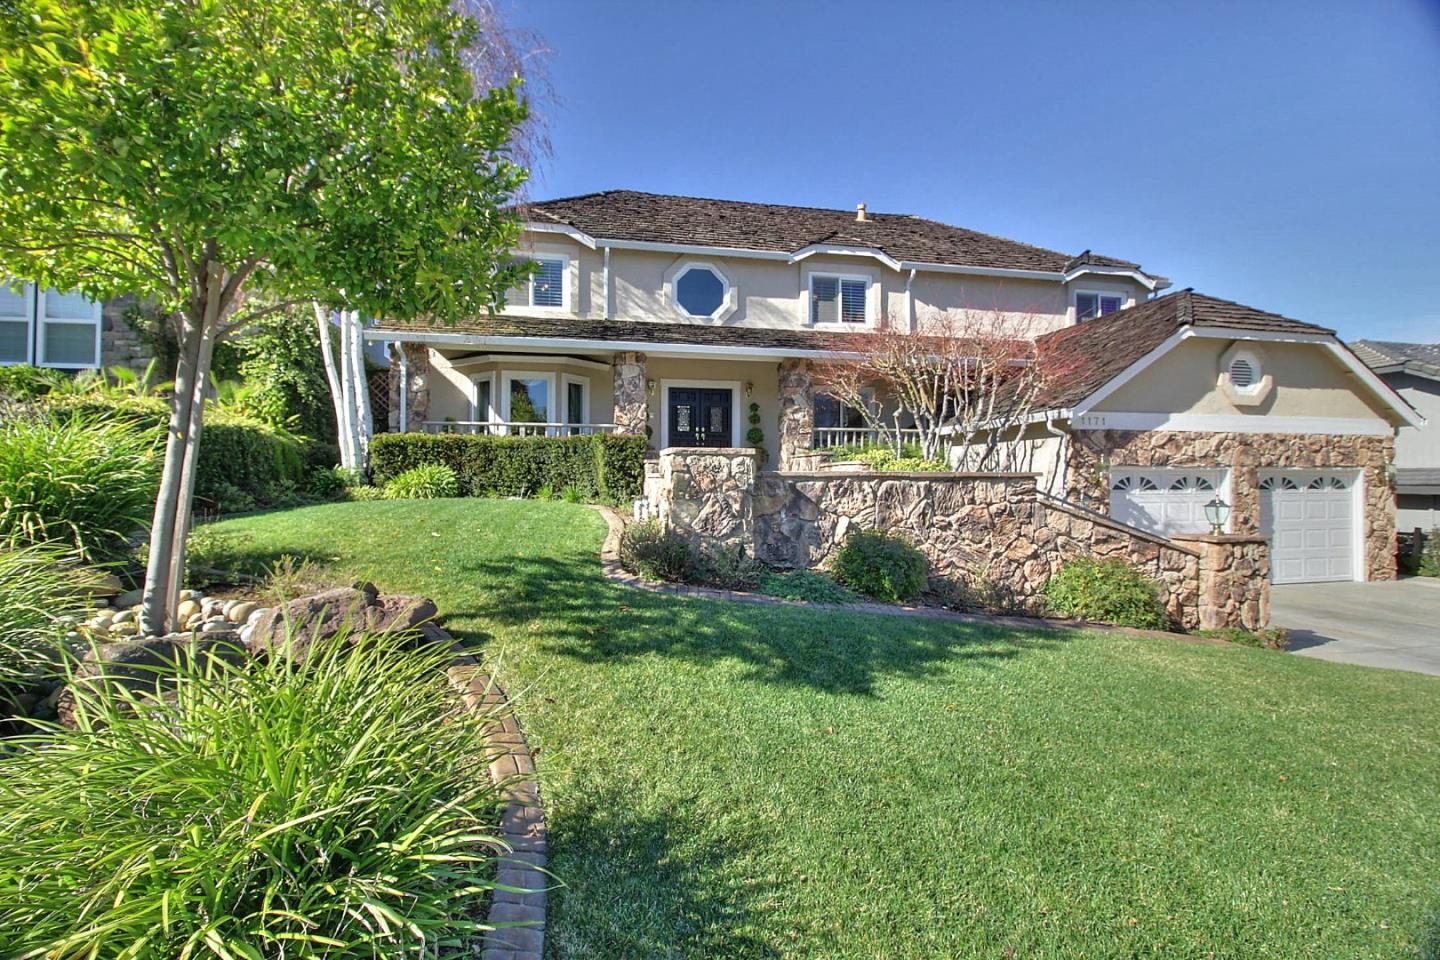 1171 Copper Peak Ln, San Jose, CA 95120